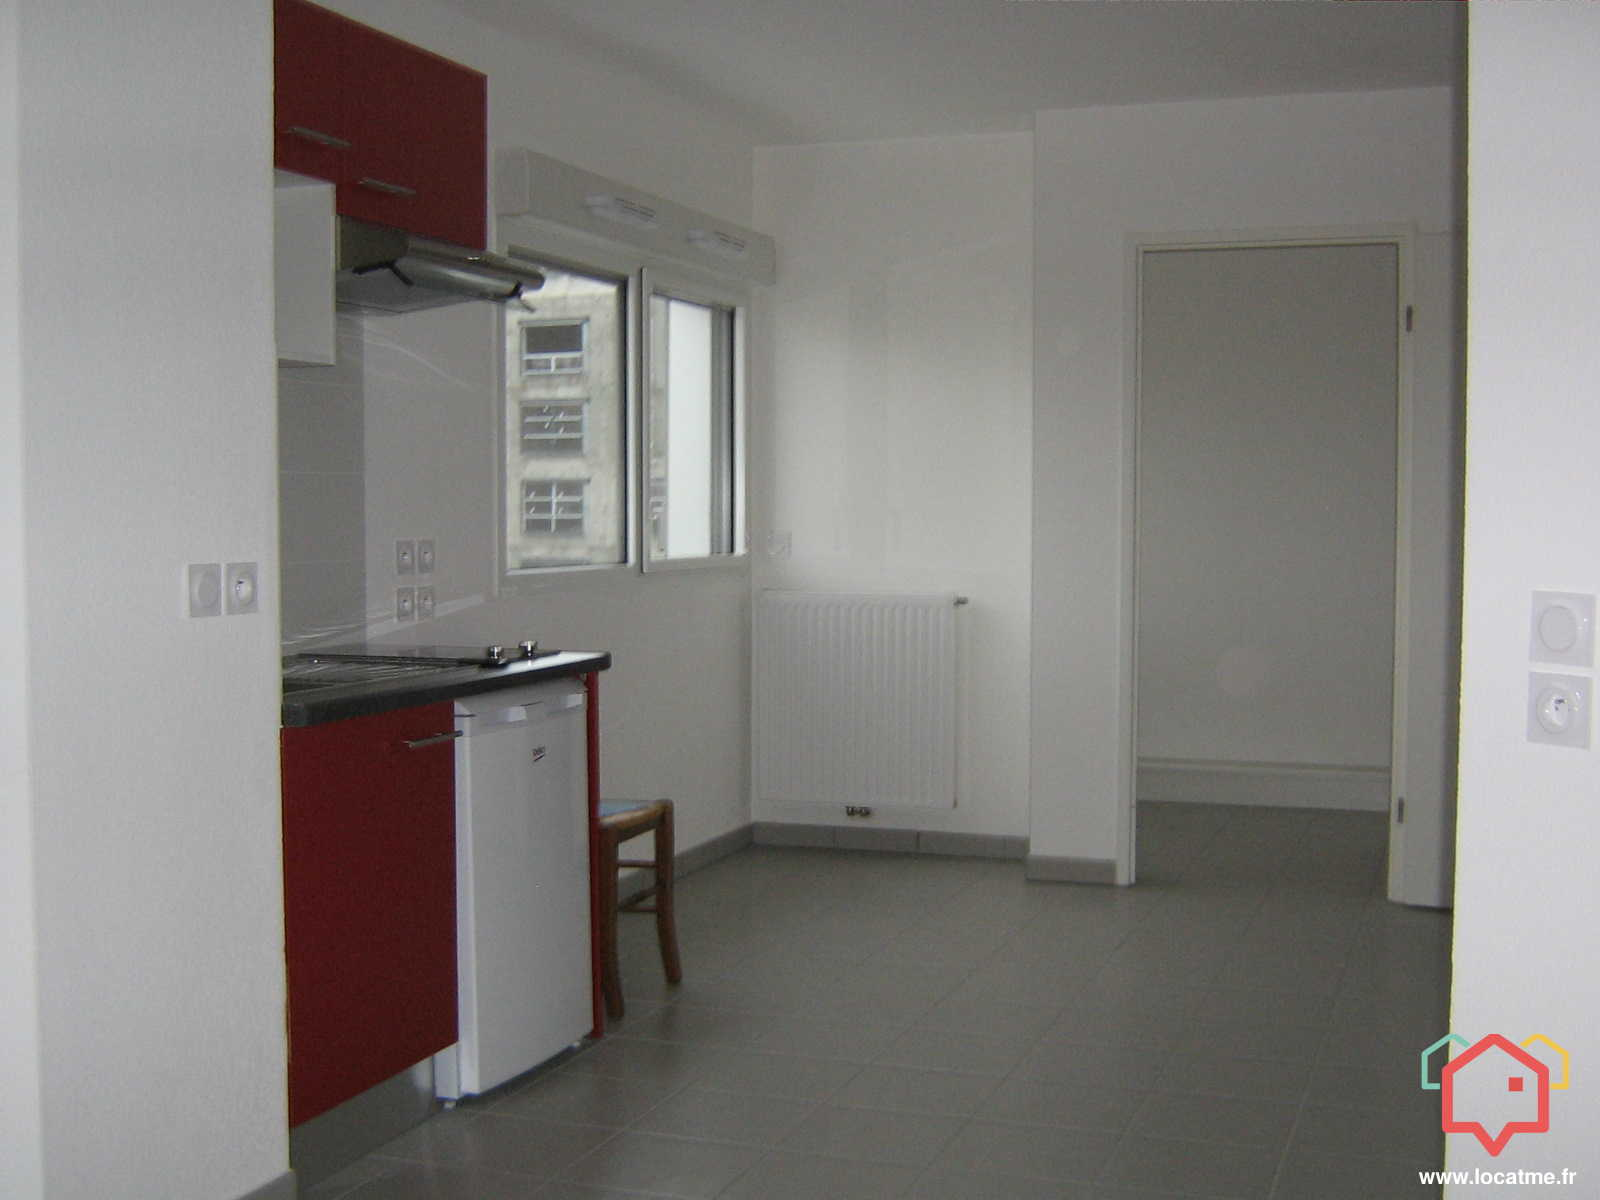 Location de logements entre particulier bordeaux 33300 for Appartement meuble bordeaux